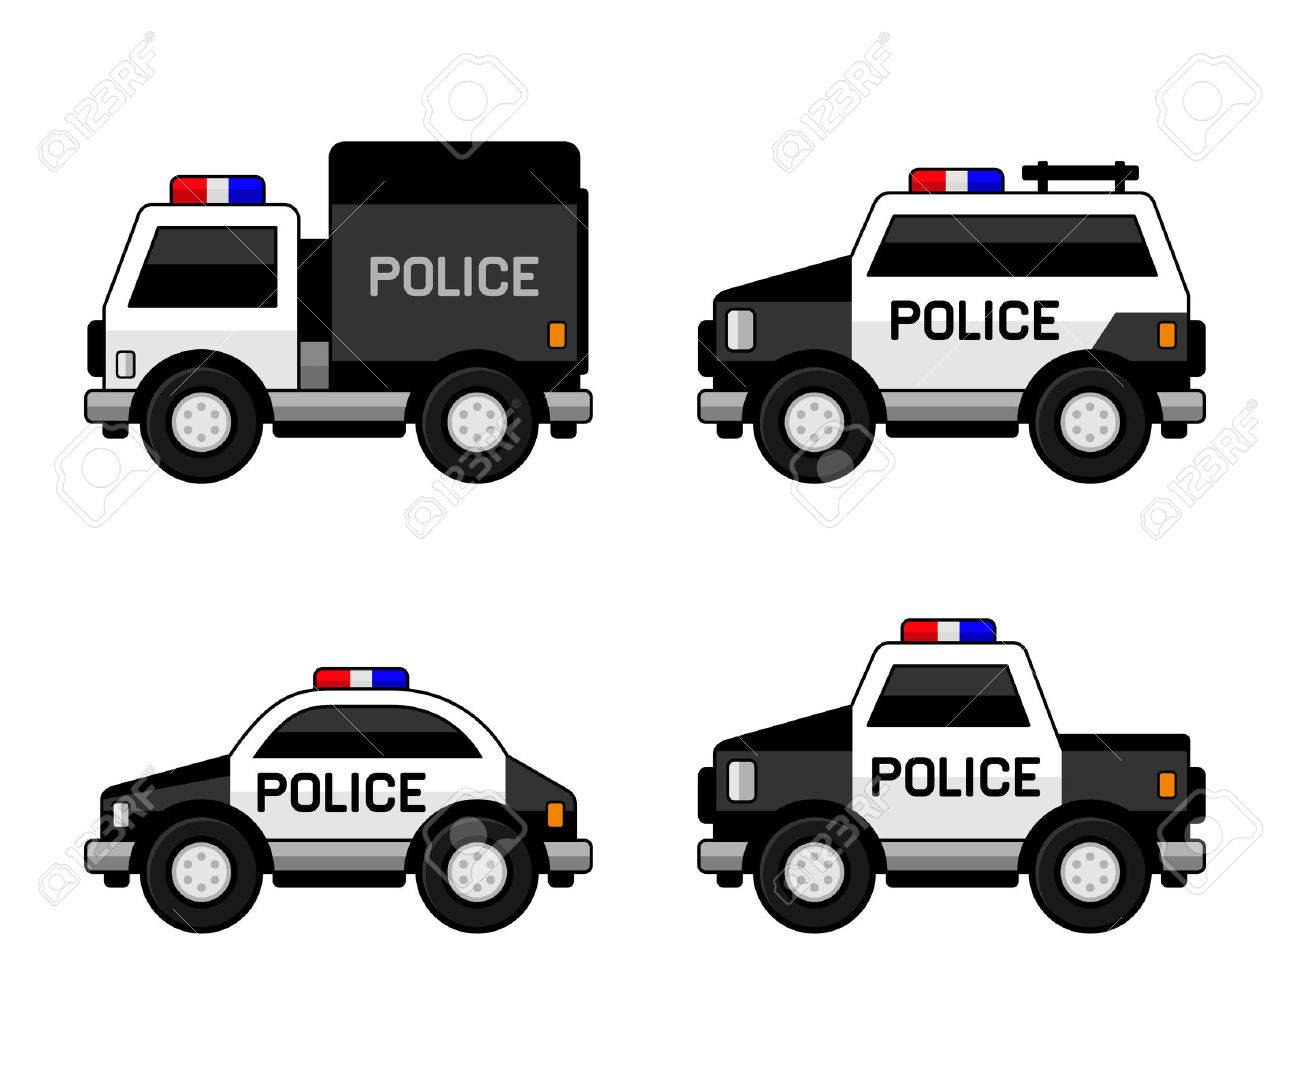 Police Car Set. Classic Black and White Colors. illustration - 53382466